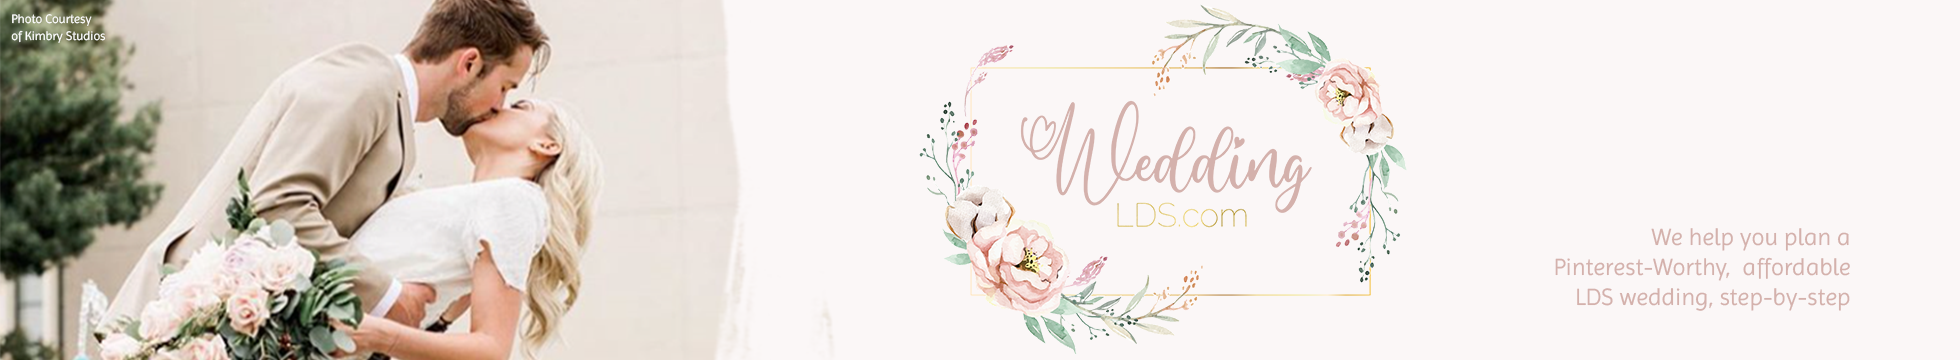 cropped-WeddingLDS-We-help-you-plan-an-affordable-Pinterest-Worthy-LDS-wedding.png